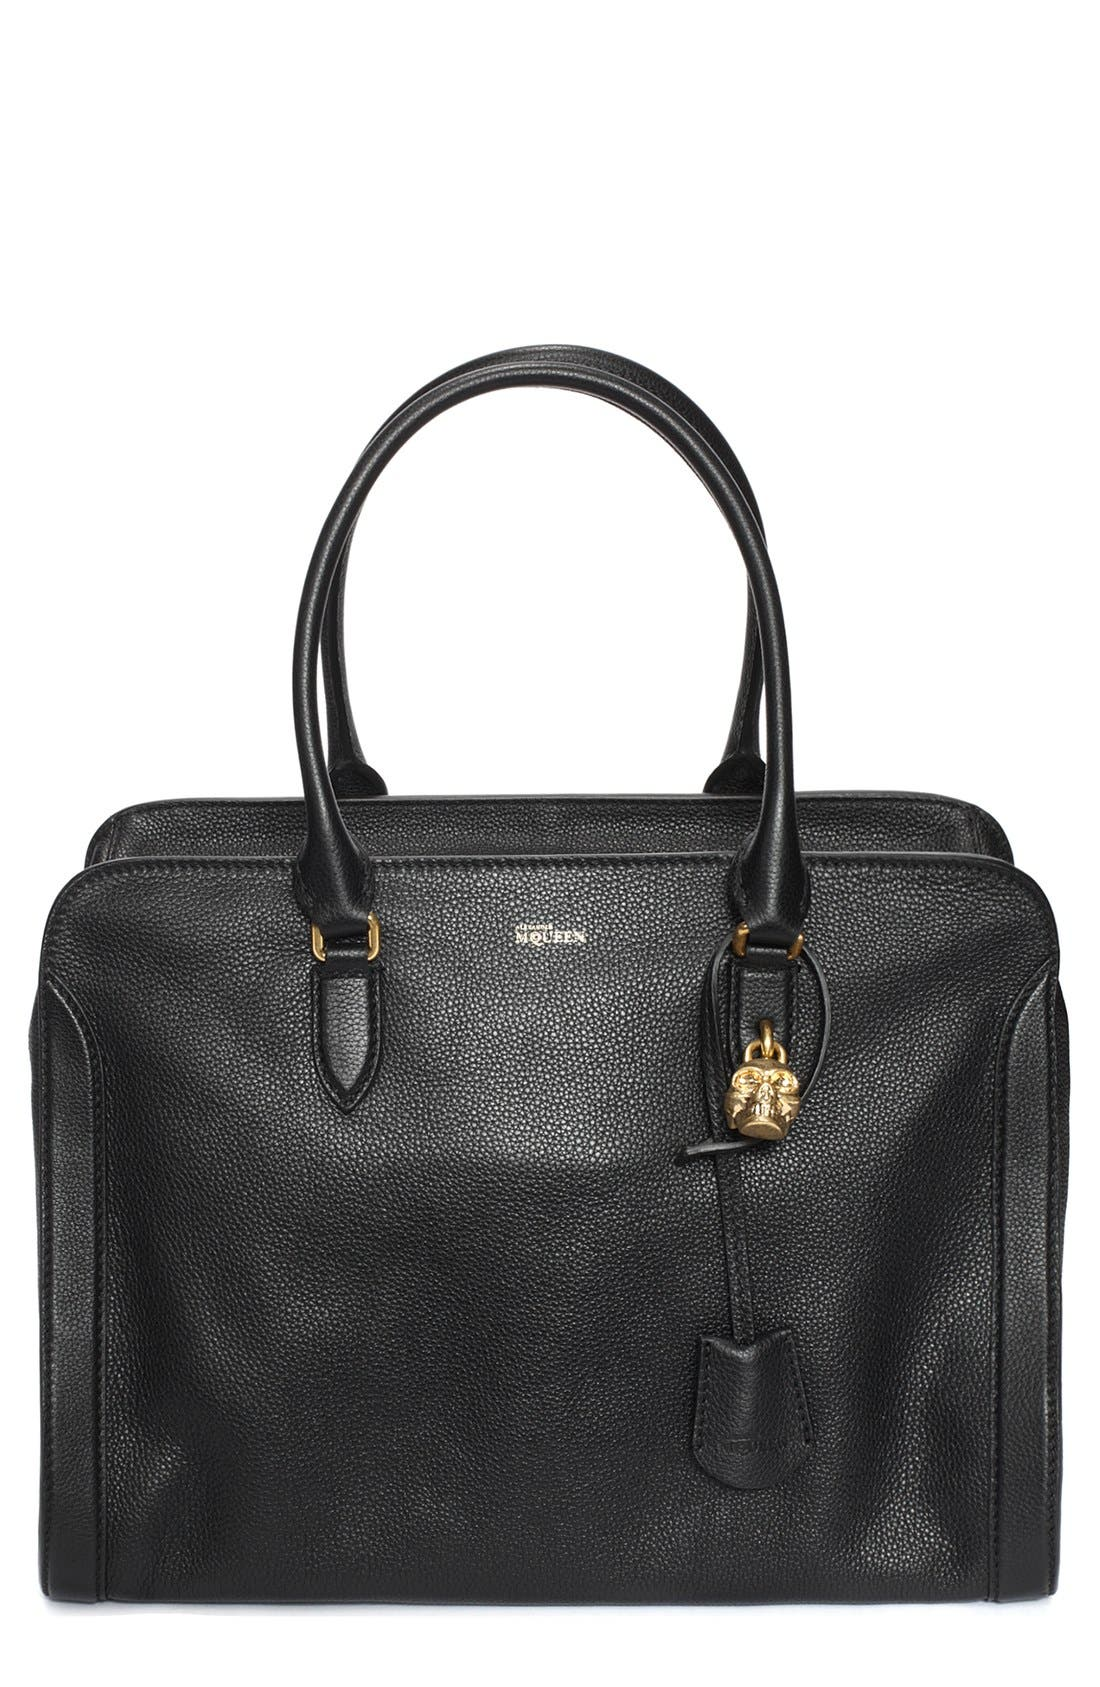 'Padlock' Calfskin Leather Duffel Bag, Main, color, 001